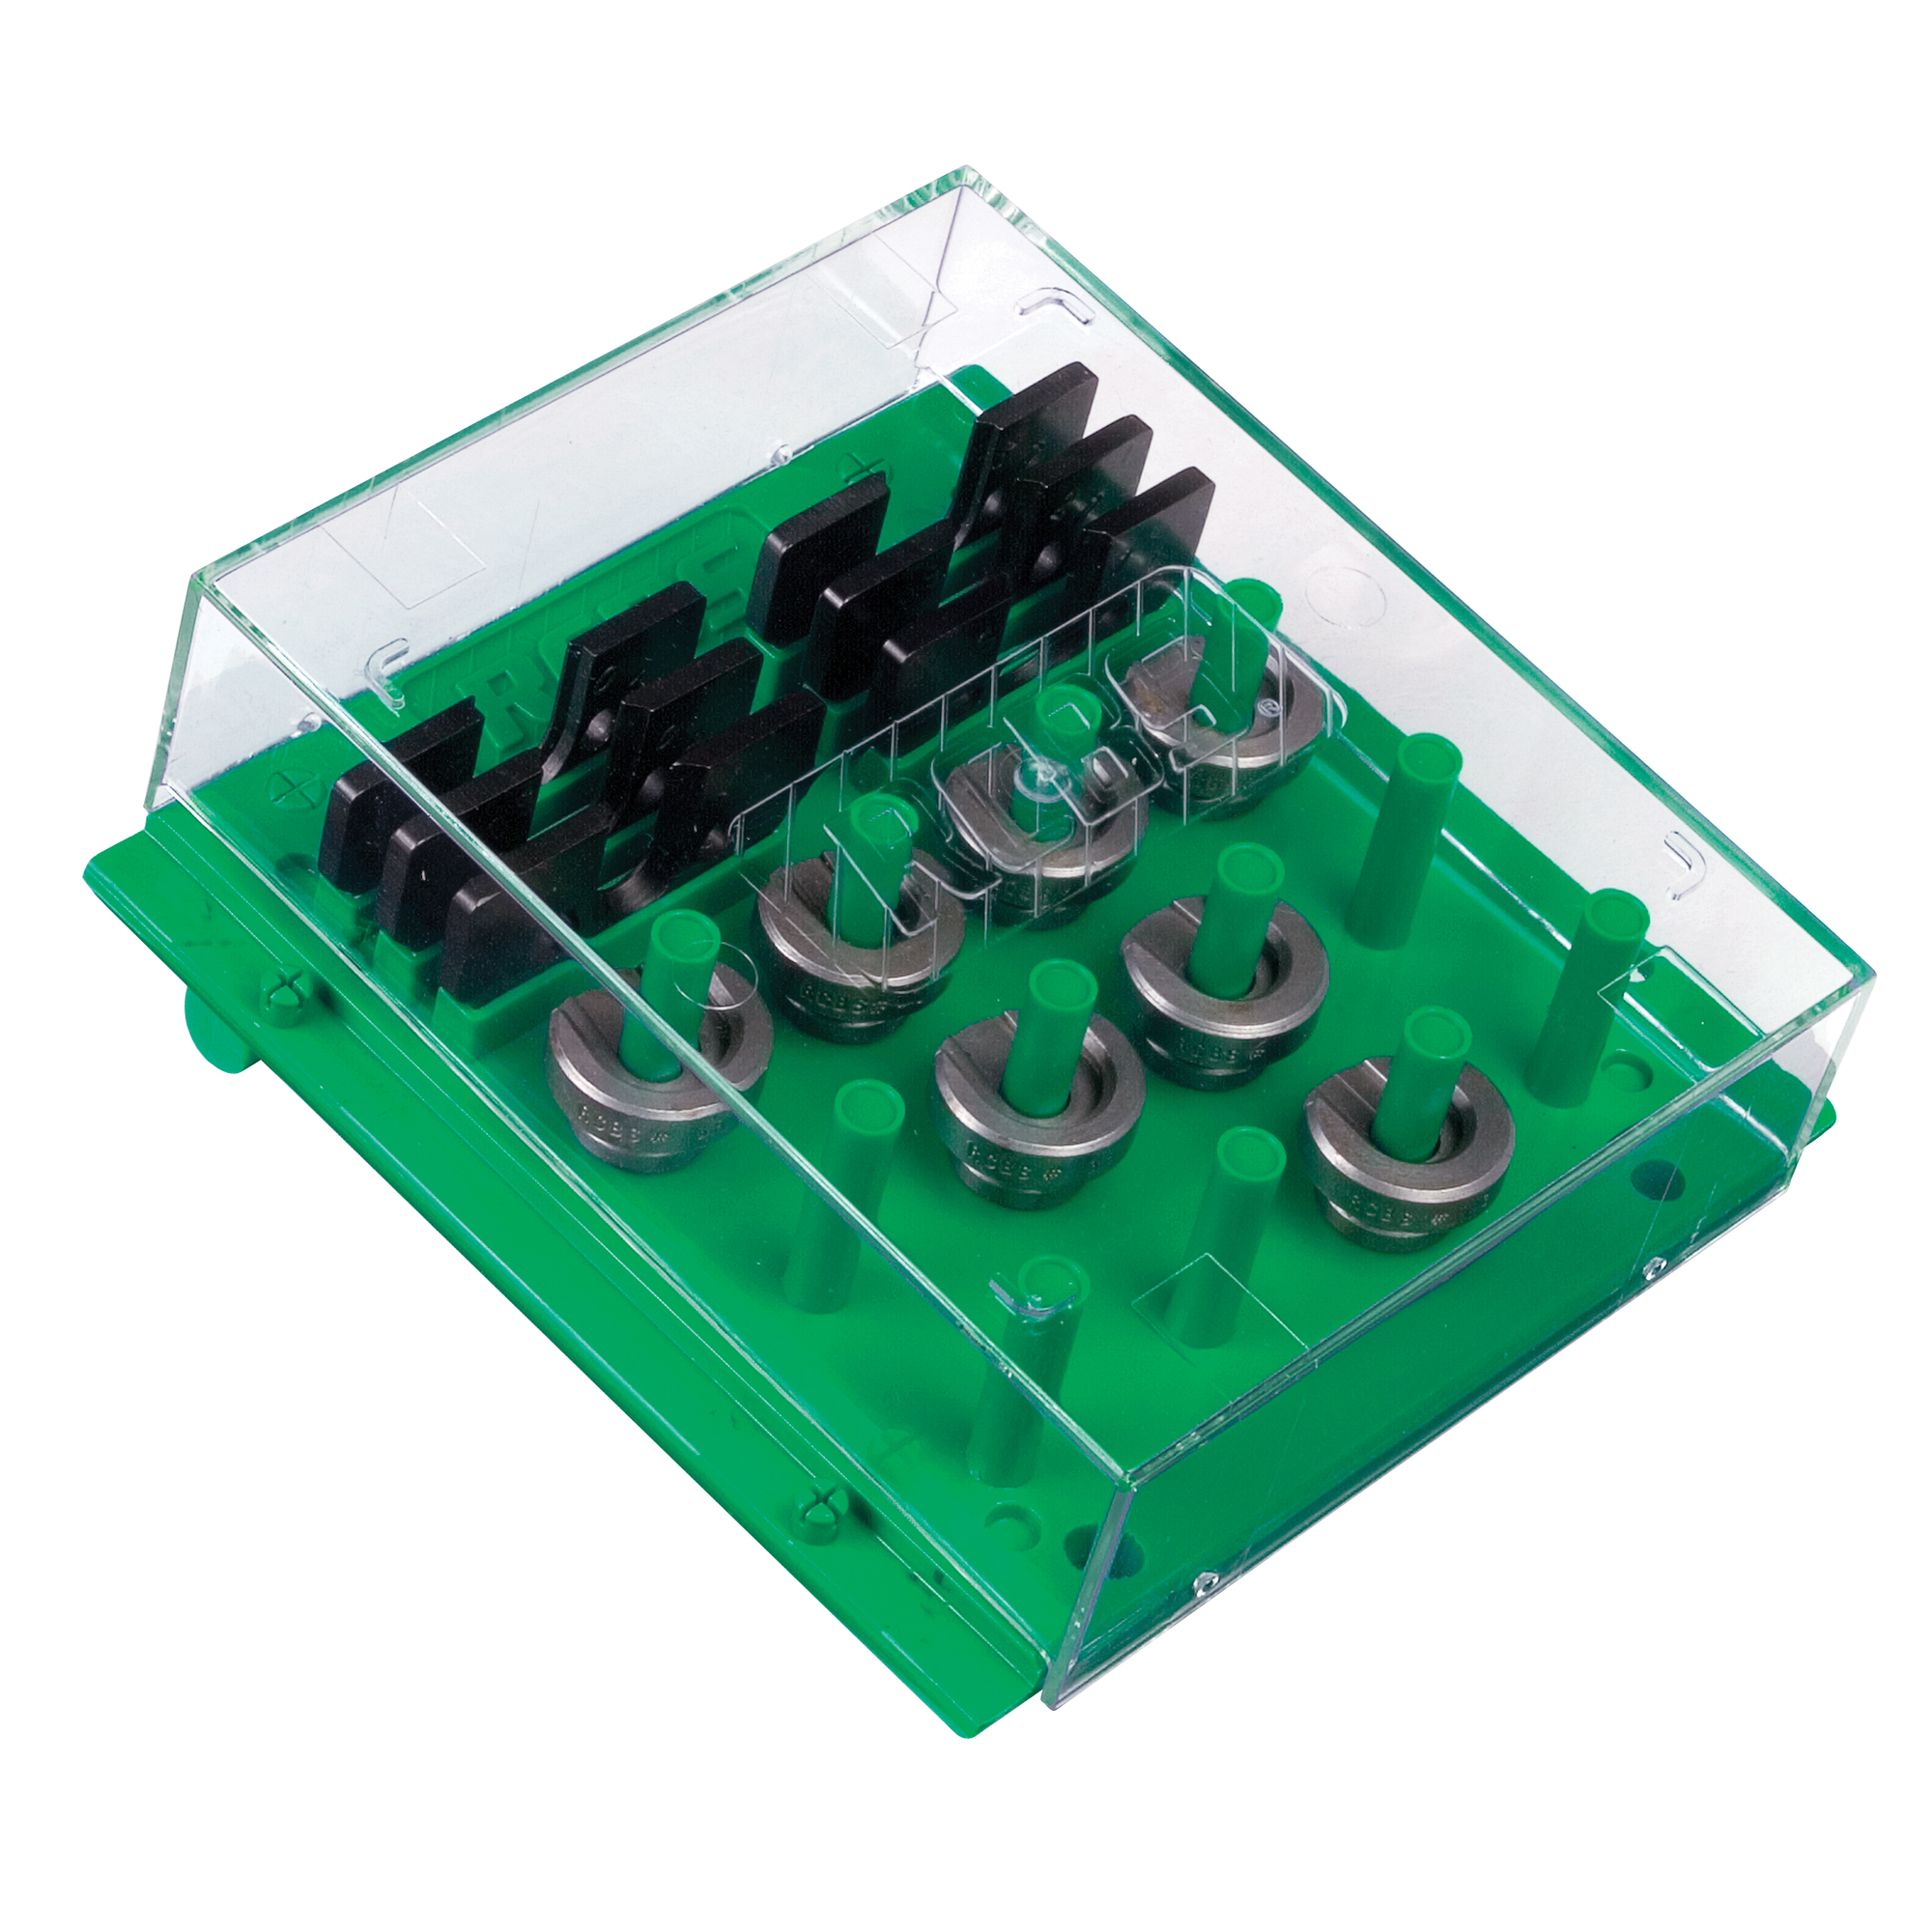 """With the RCBS(R) Shell Holder Rack"""" reloaders can keep shell holders organized and protected. The Shell Holder Rack has 12 positions that hold two shell holders on each post. There is also room to store six Trim Pro(R) Shell Holders as well. The clear cover keeps out the dust and dirt while allowing reloaders to see what is stored in the rack. The Shell Holder Rack can be mounted on the wall or used on the bench. The wall mount spacing allows it to be hung off of standard 1-inch pegboard hooks as well. The support legs angle the bottom out for wall mounting or the top up for bench use. Additional Shell Holder Racks can be snapped together if more shell holder storage is needed."""